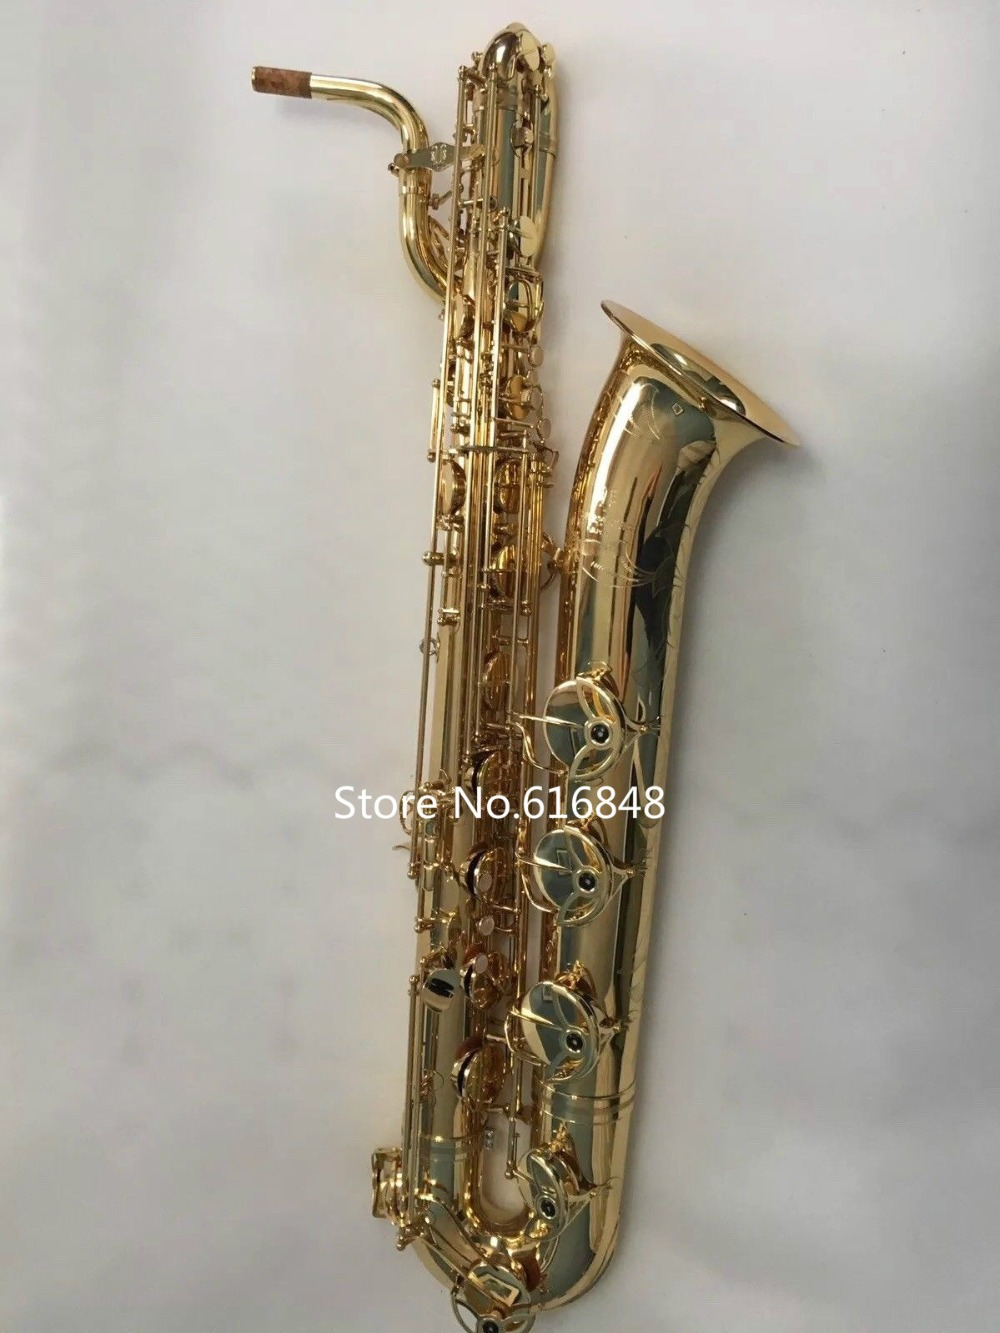 2018 New YANAGISAWA B-901 High Quality Instruments Baritone Saxophone Brass Gold Plated Surface Sax With Case Accessories free shipping new high quality tenor saxophone france r54 b flat black gold nickel professional musical instruments